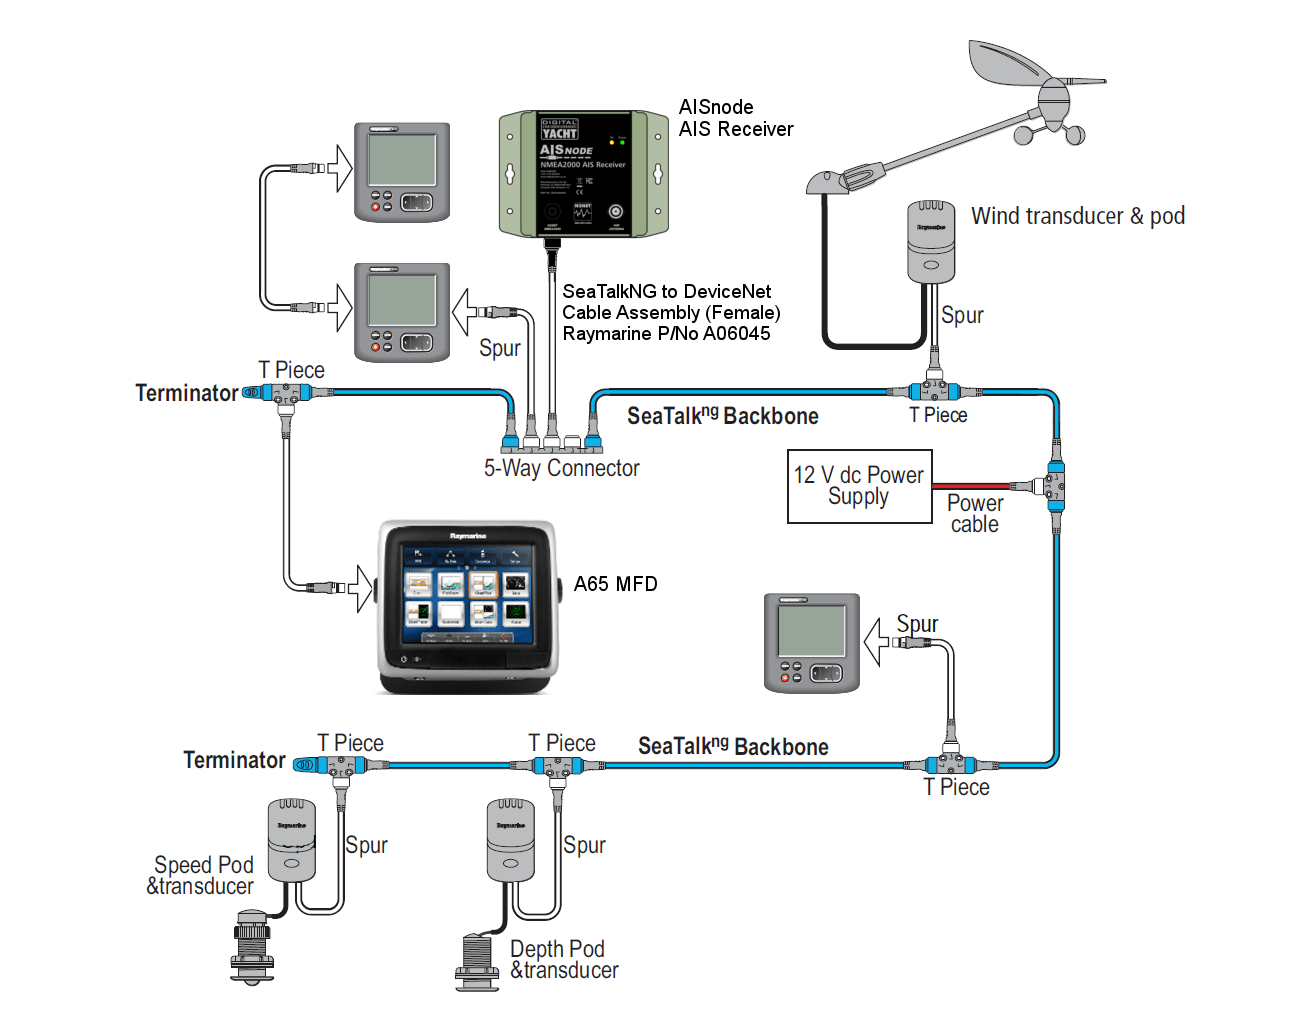 garmin gps antenna wiring diagram dicot leaf labeled new aisnode is the perfect nmea2000 ais receiver - digital yacht news